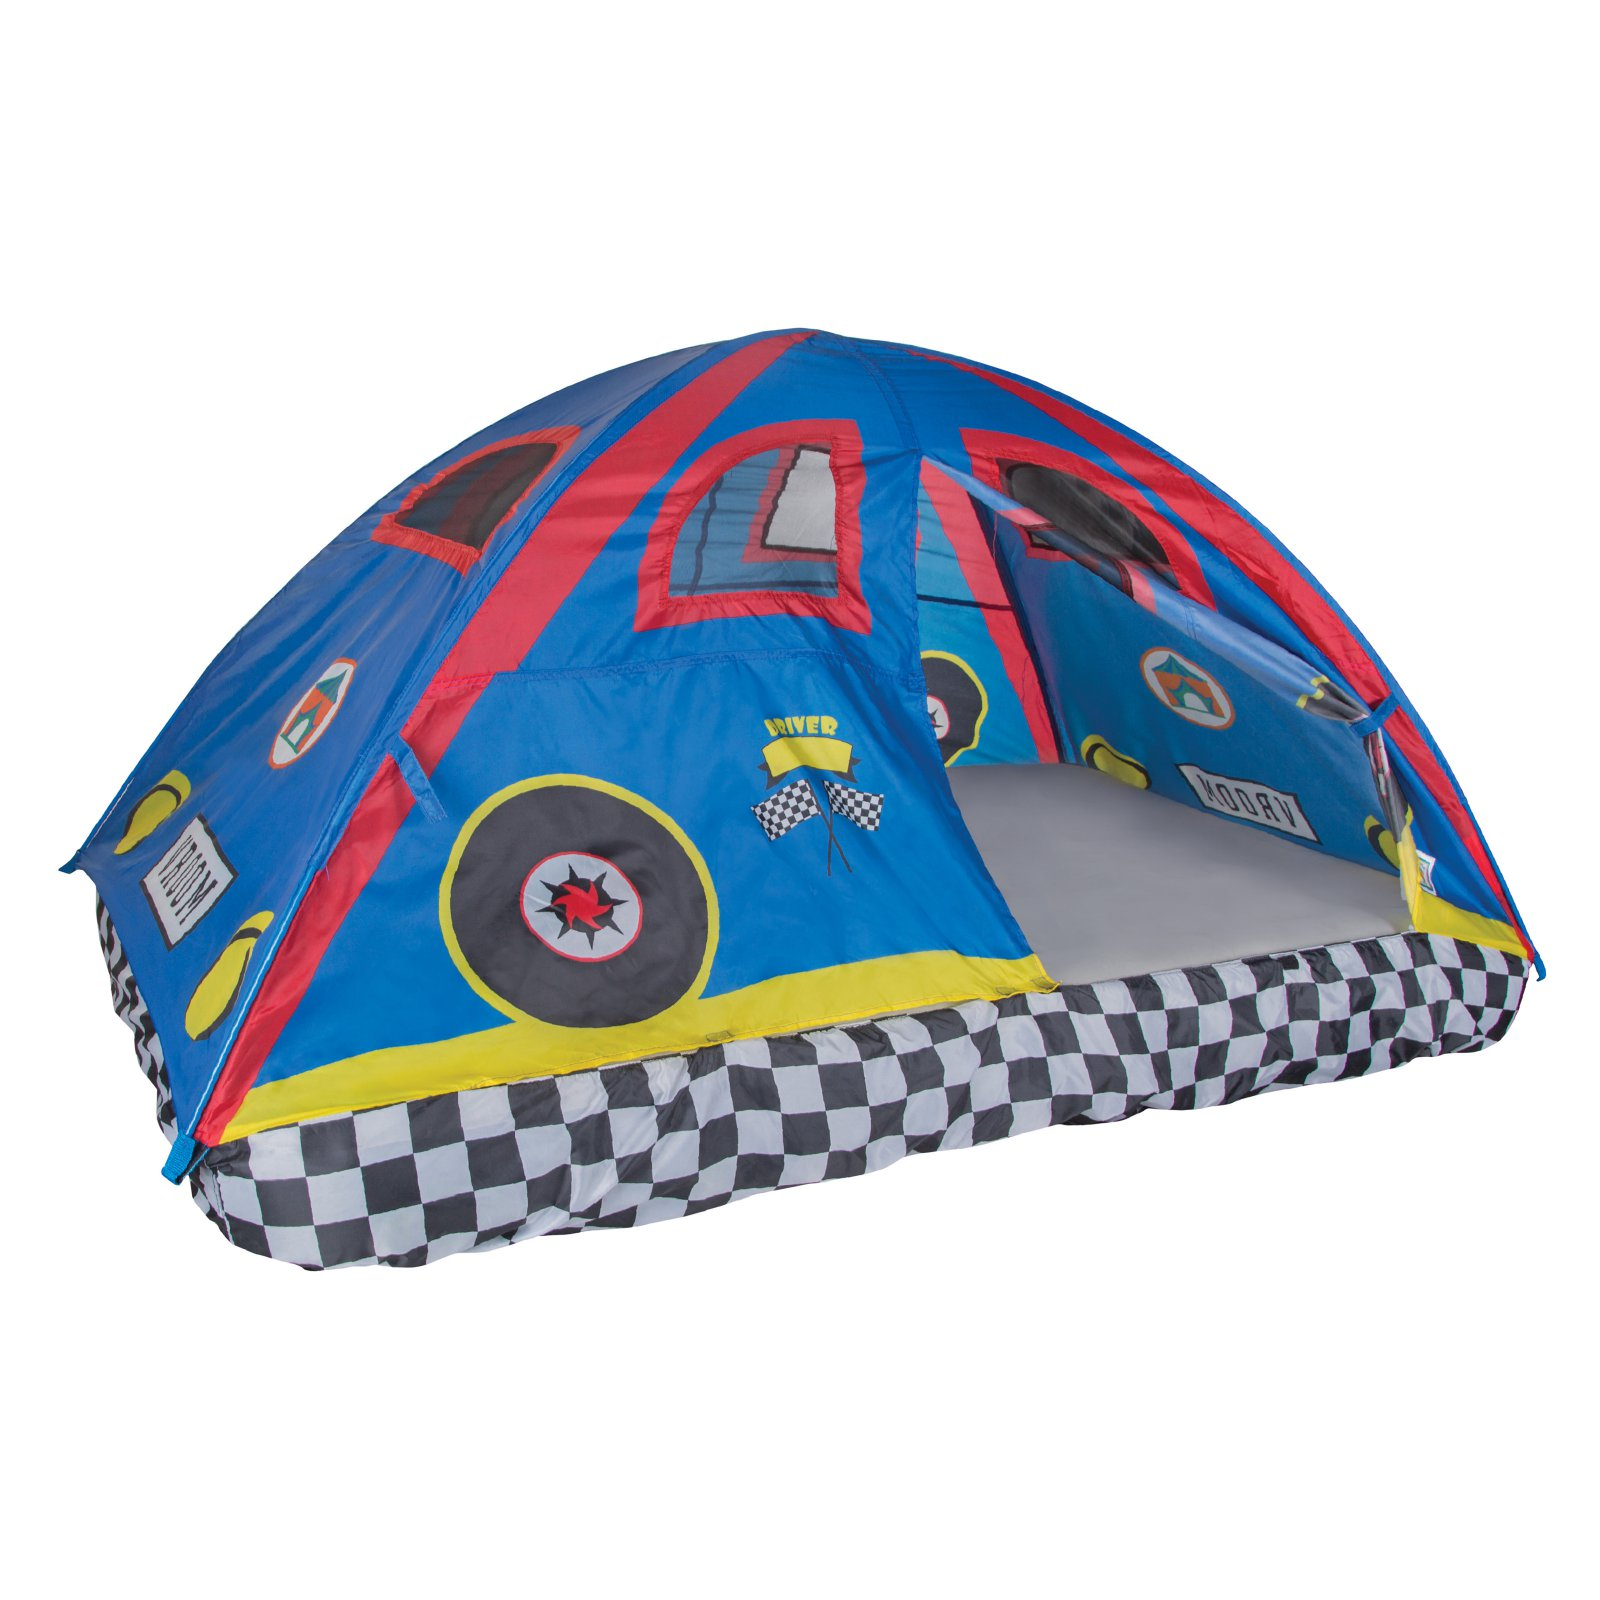 Rad Racer Bed Tent, Twin